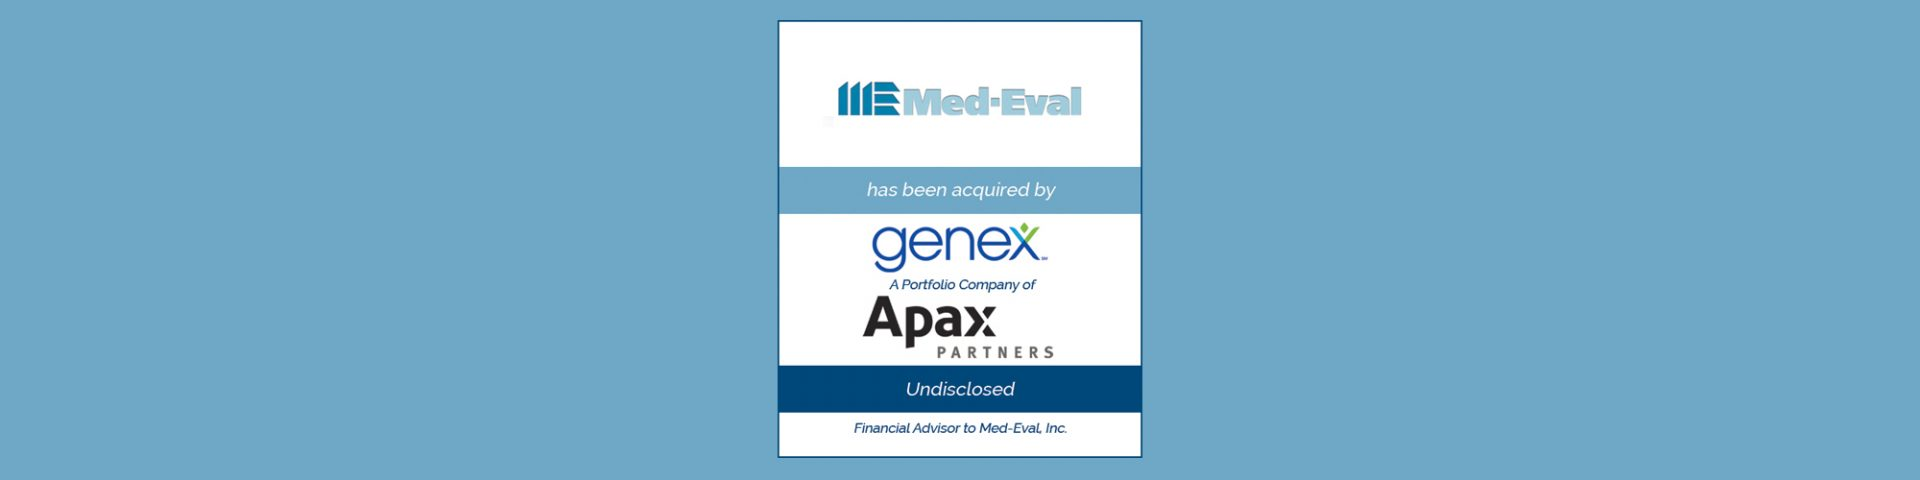 Genex Services Acquires Med-Eval | Bailey Southwell & Co.